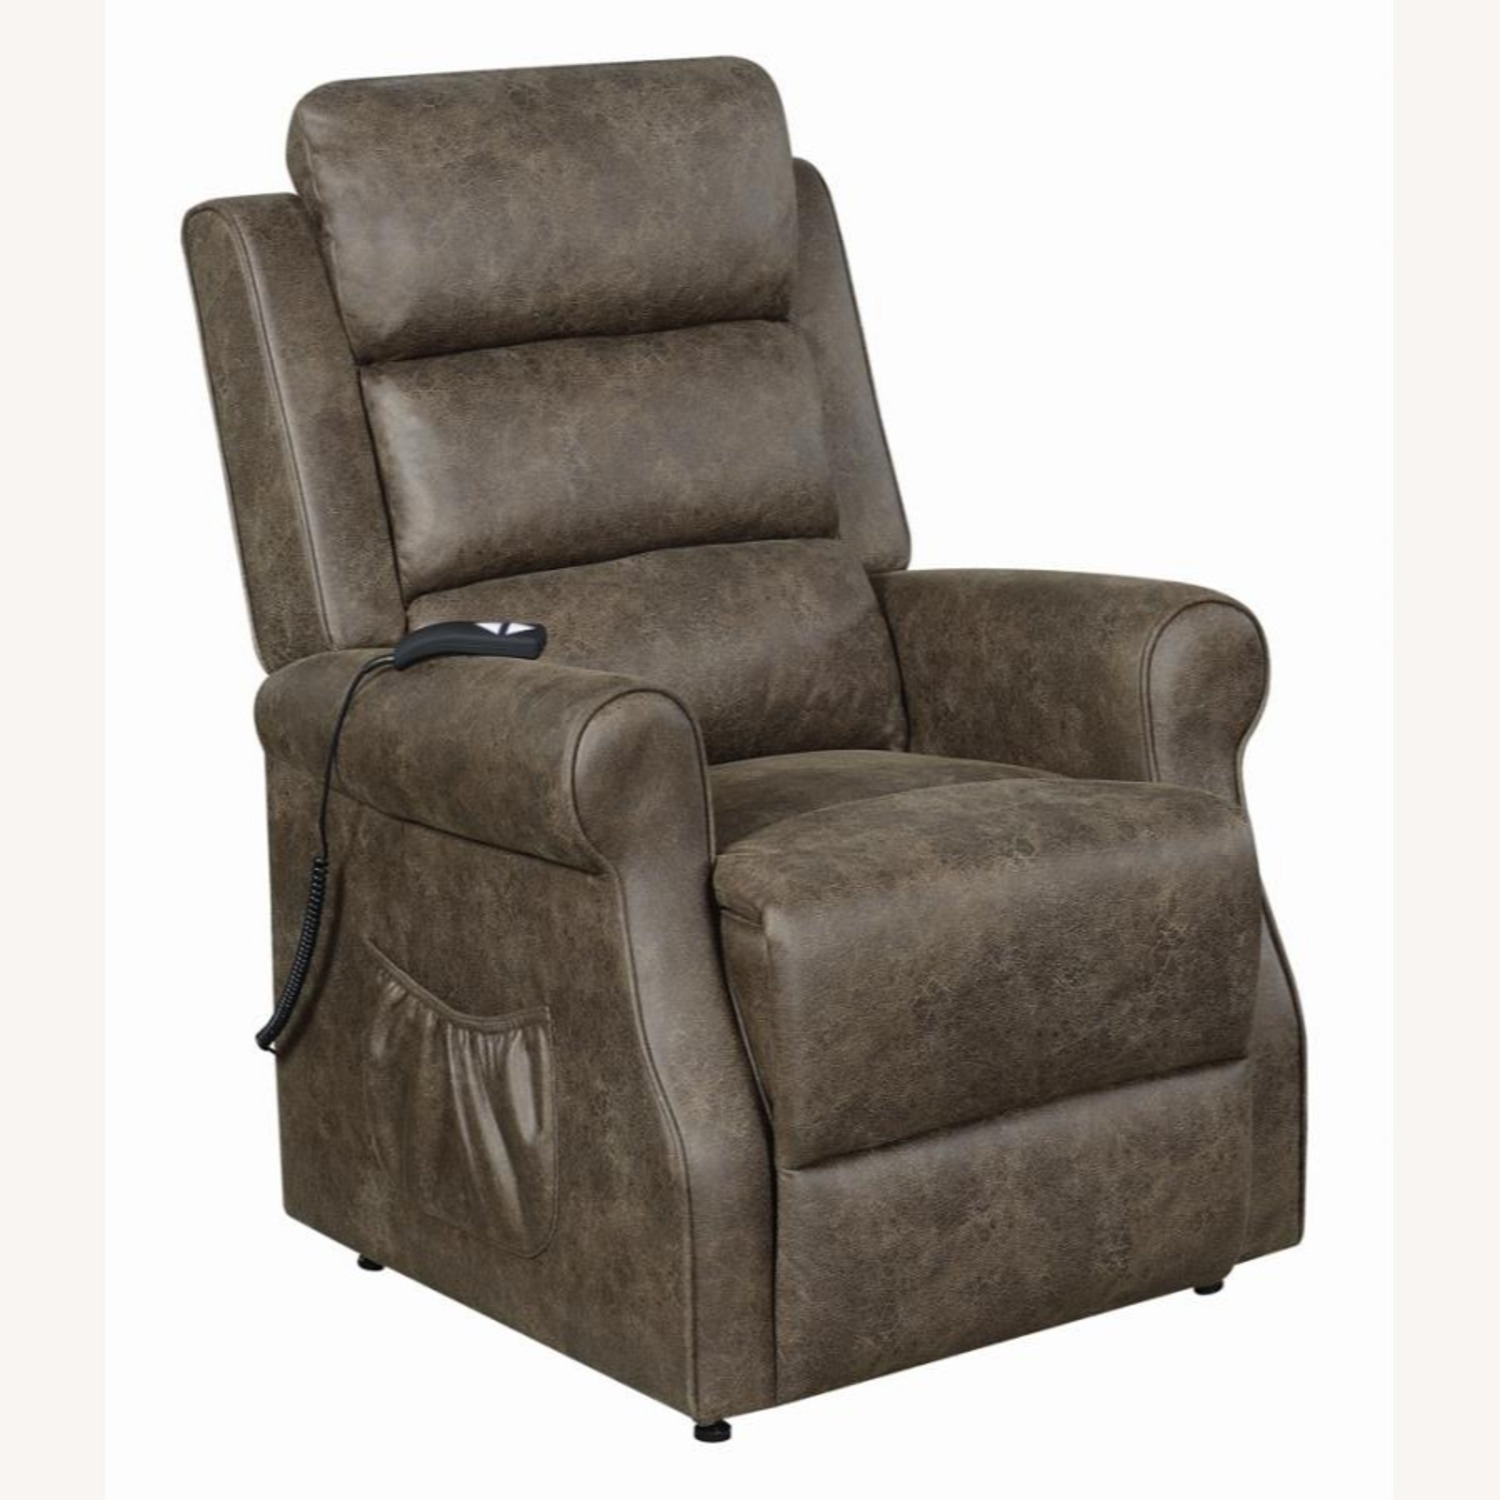 Power Lift Recliner In Brown Faux Suede Upholstery - image-0